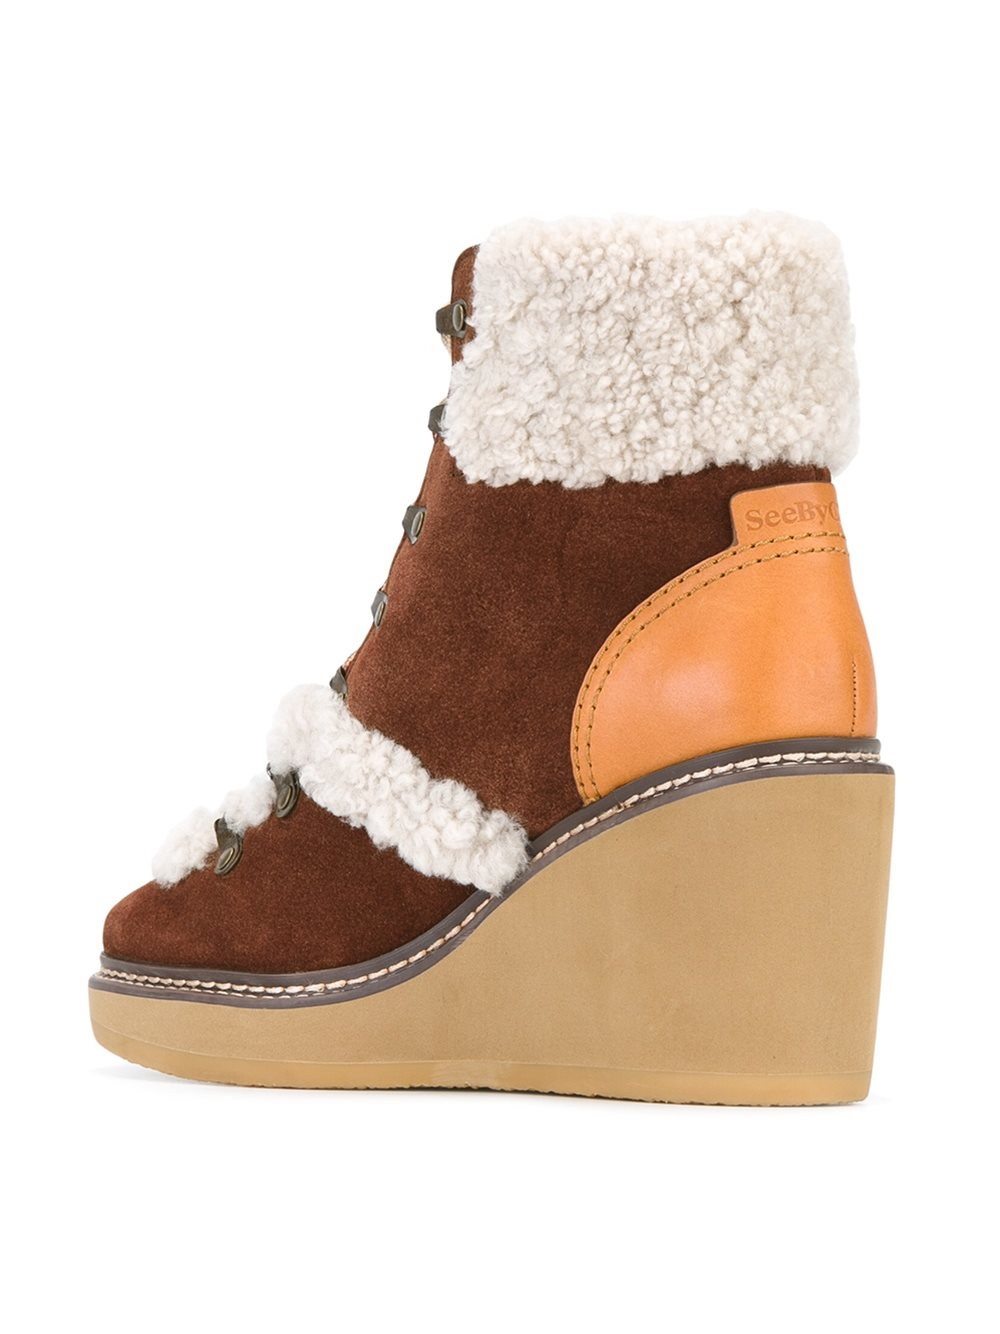 See By Chloé - 'eileen' Wedge Boots - Women - Leather/rubber - 39 in Brown